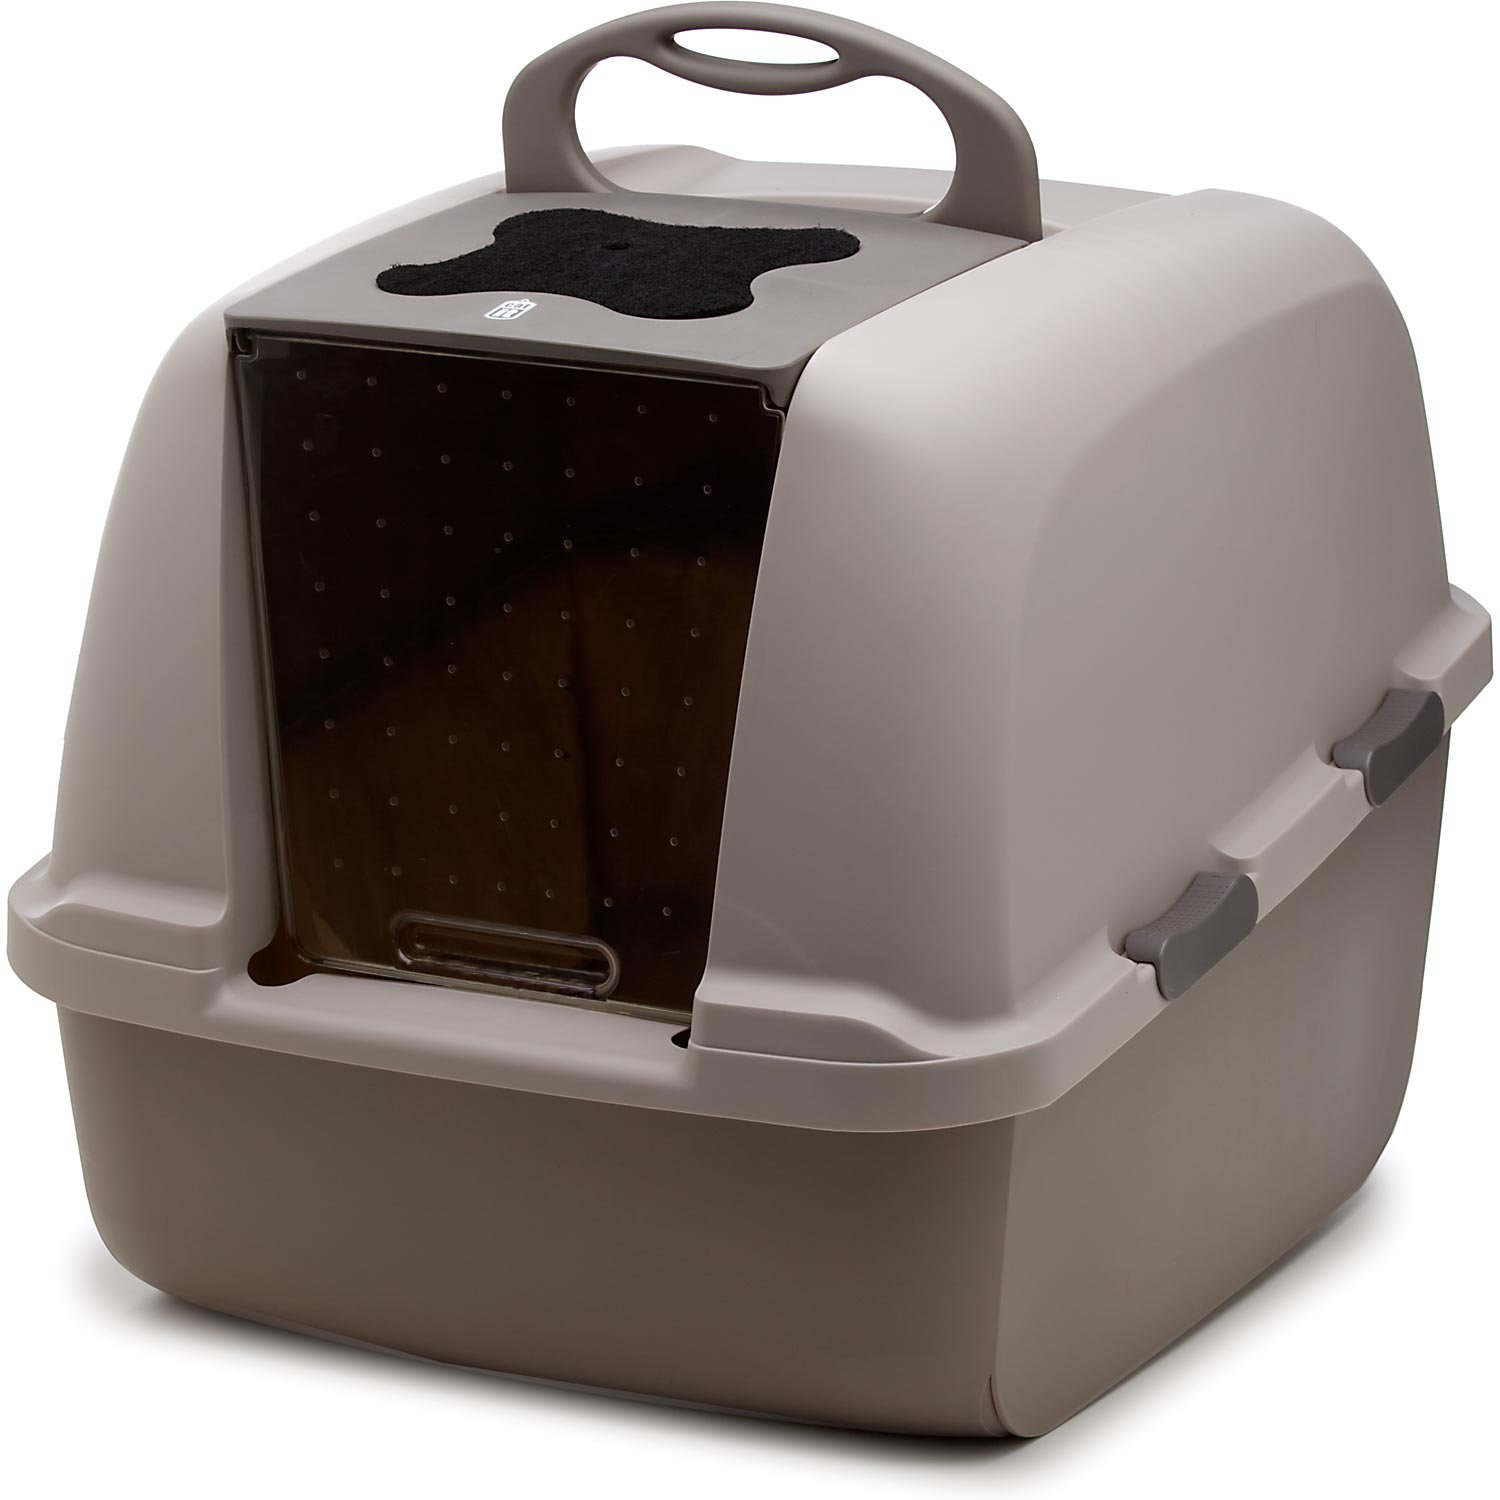 Catit Hooded Cat Litter Box Petco